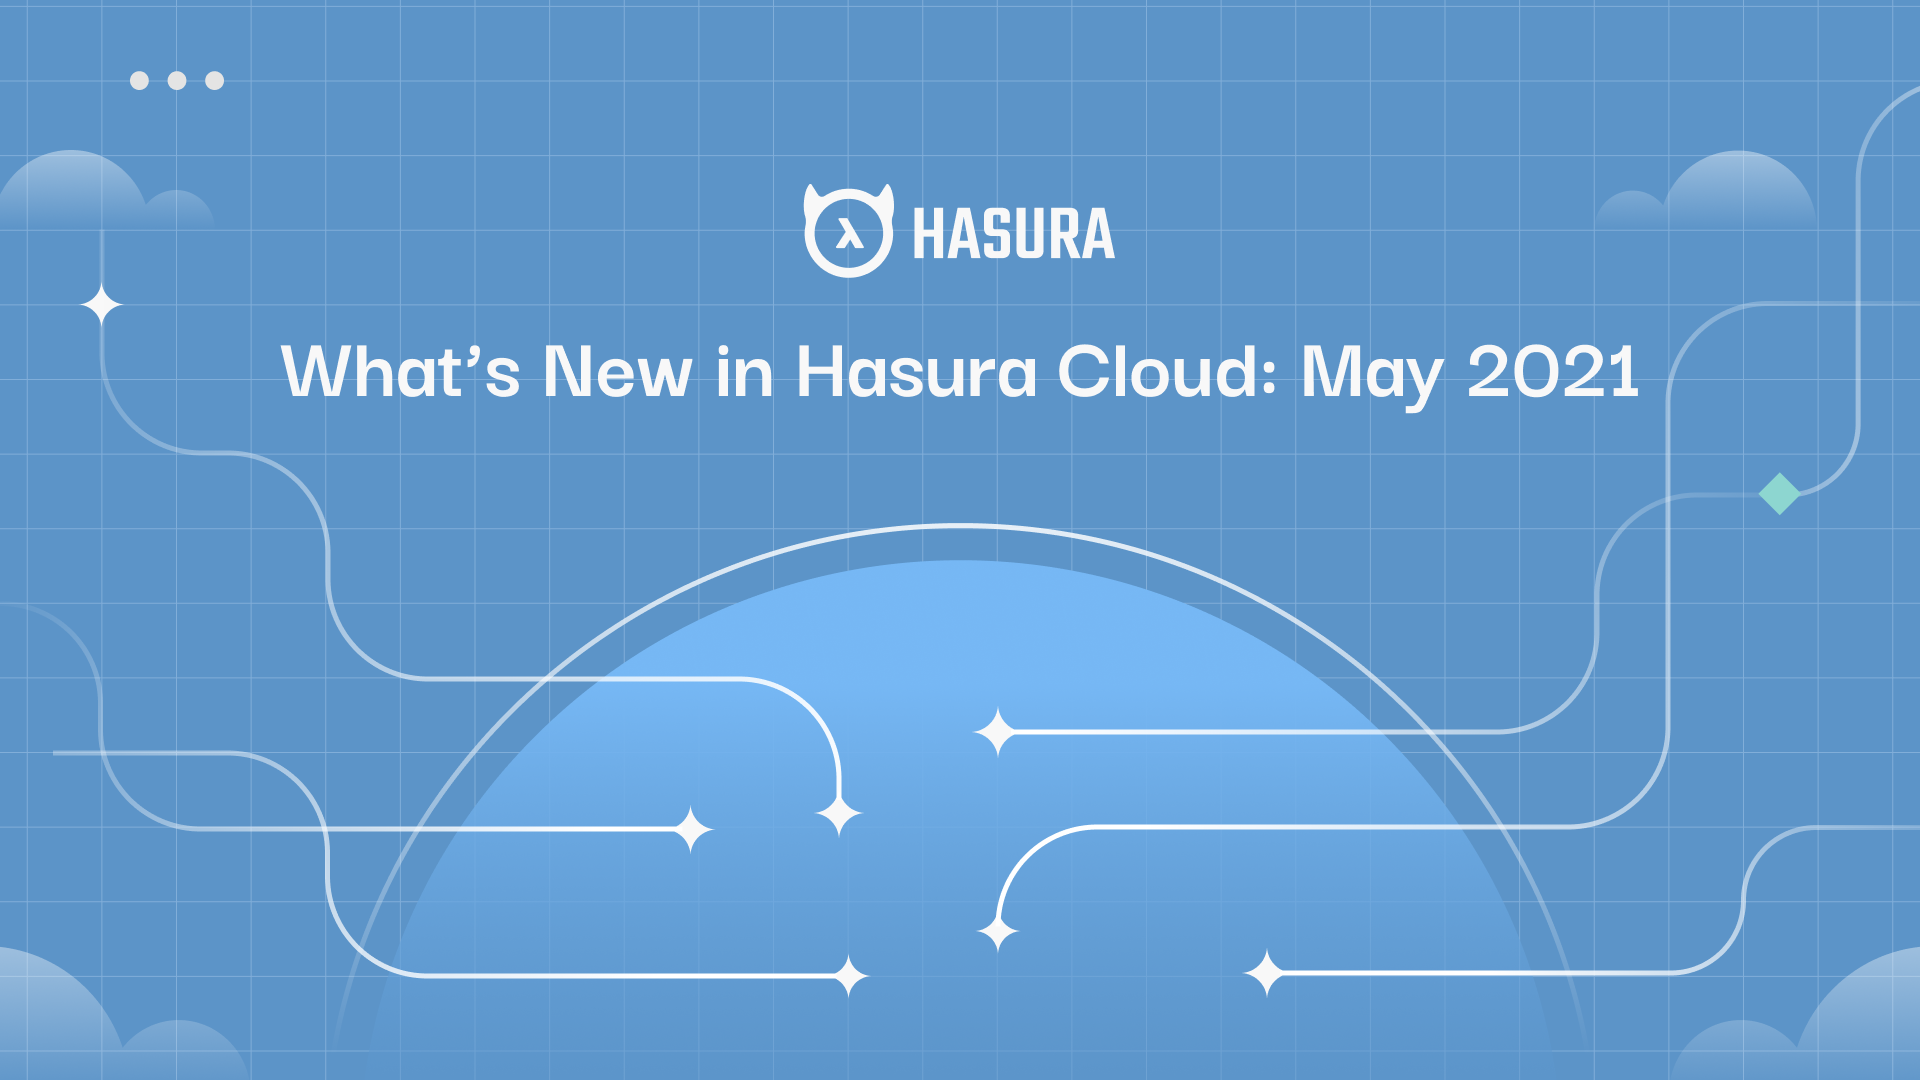 What's new in Hasura Cloud: May 2021